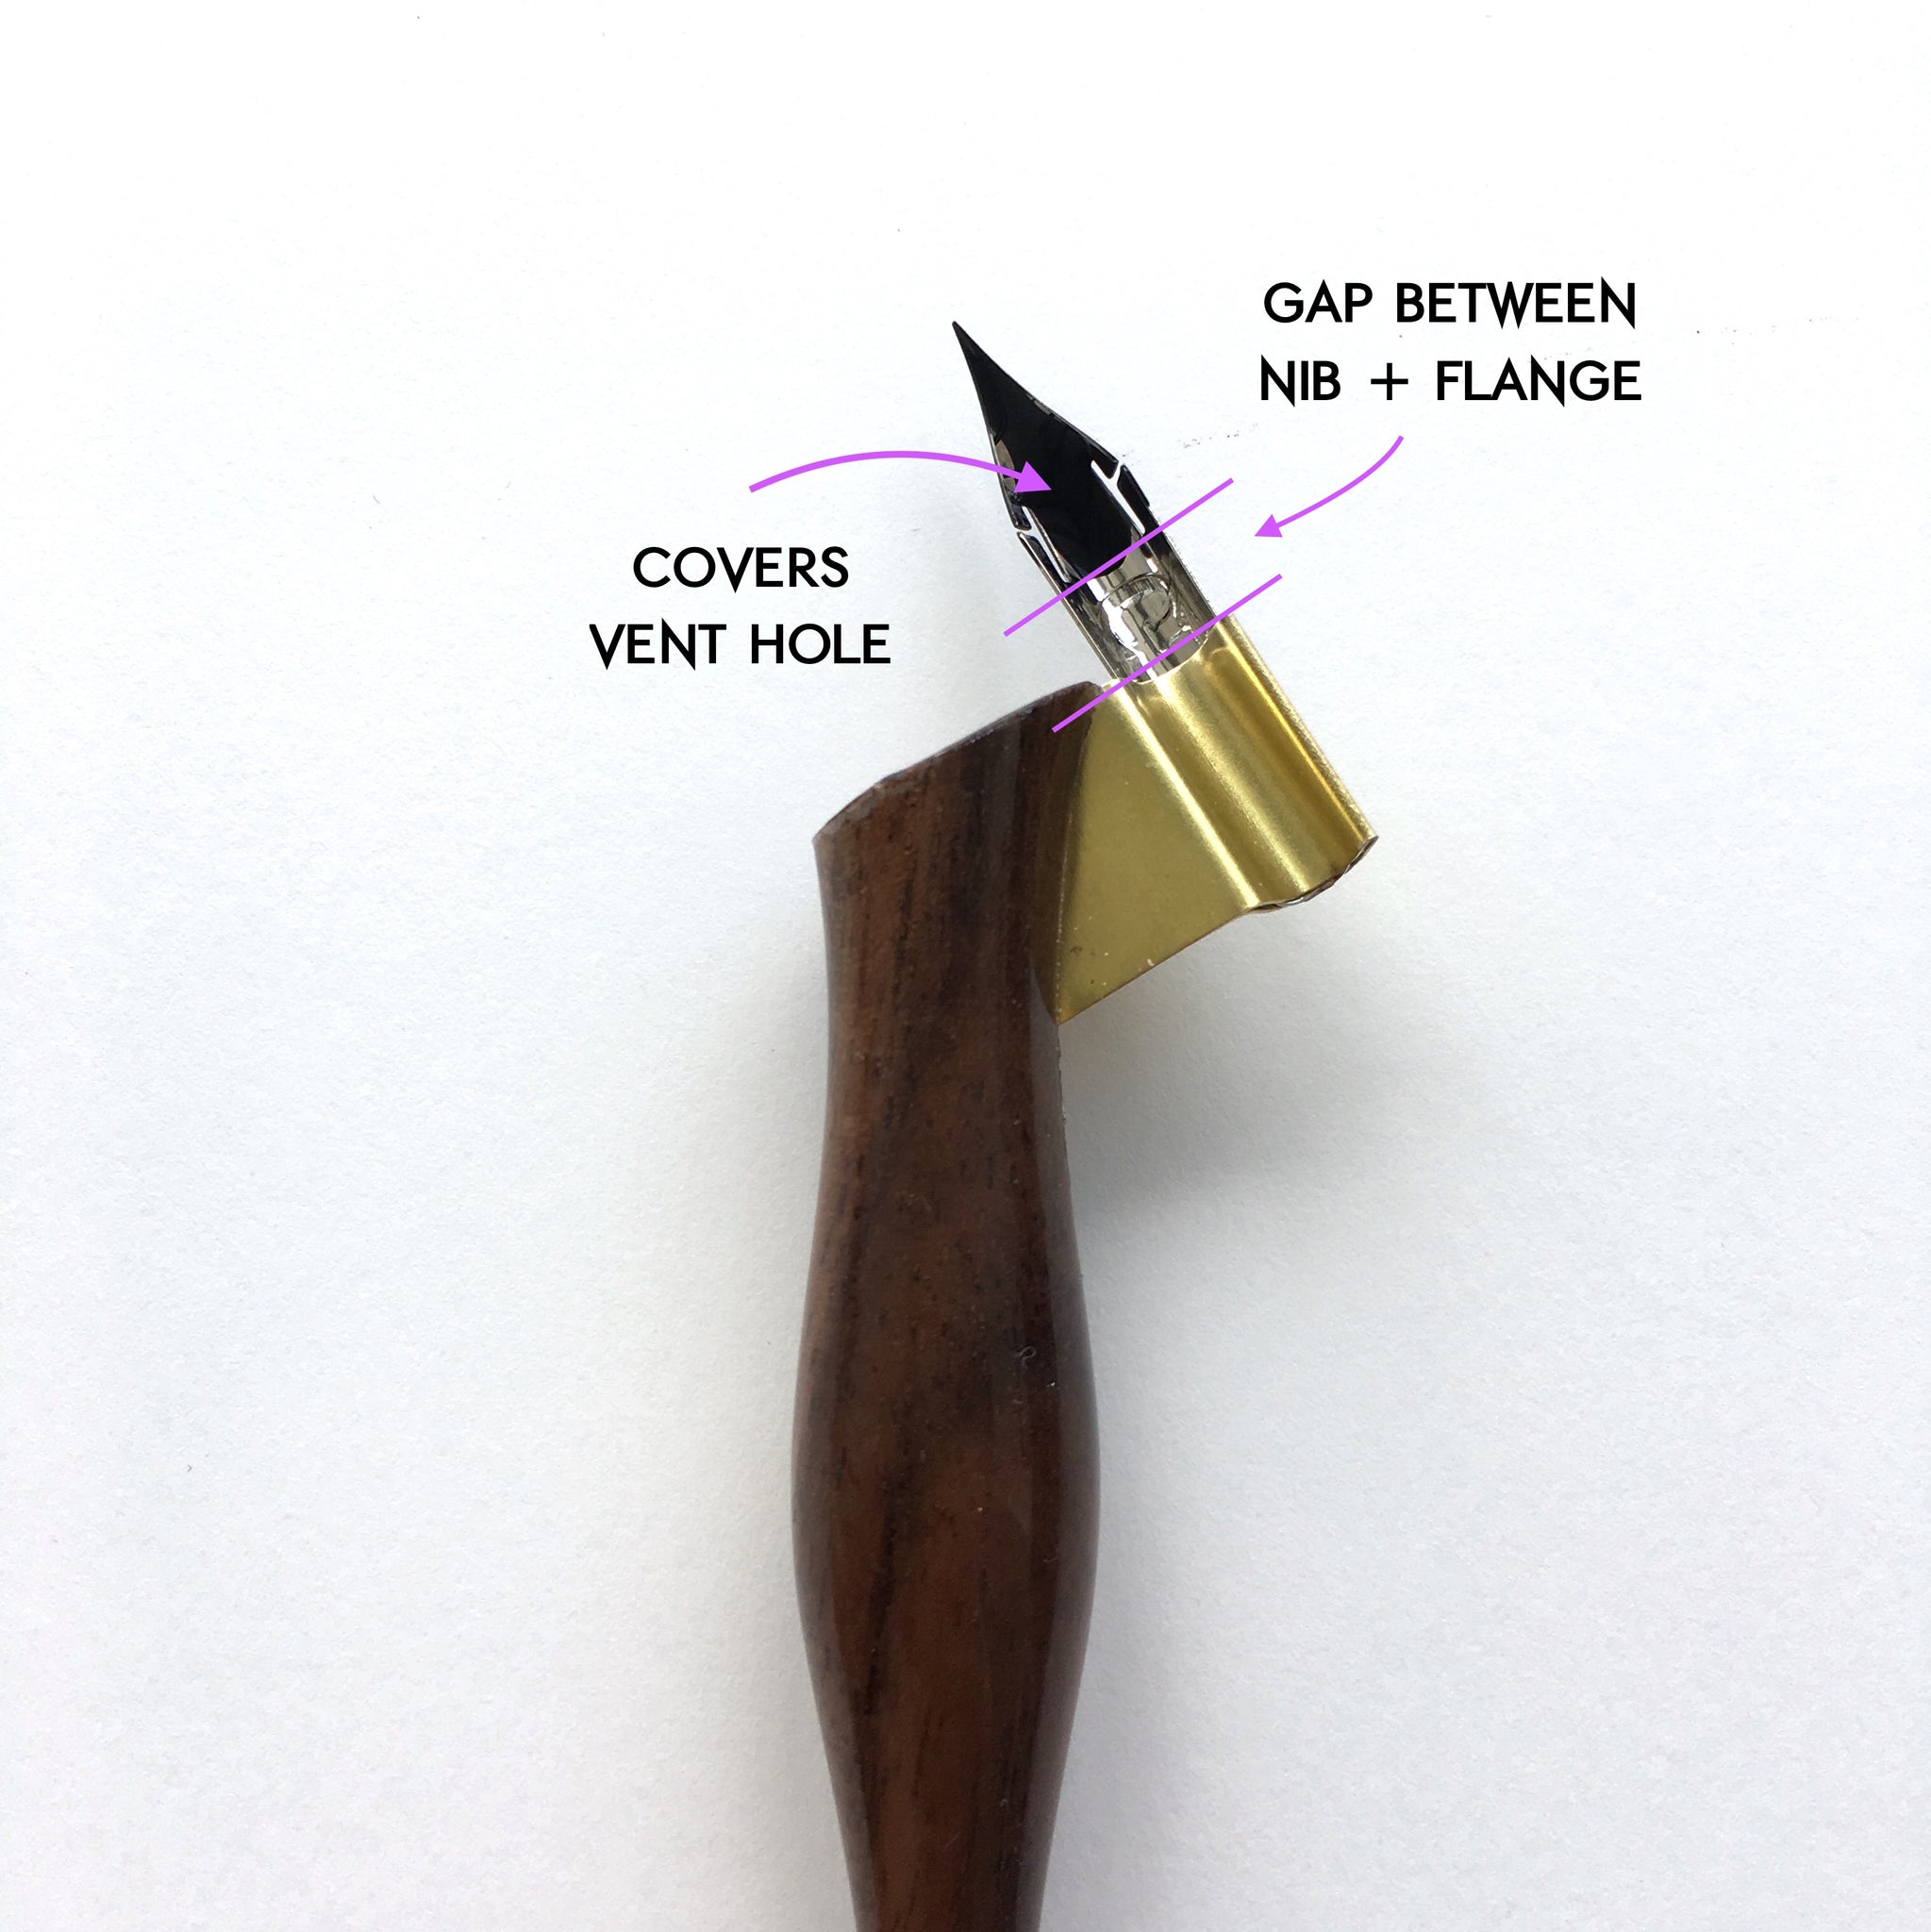 Beginner's Guide to Pointed Pen Calligraphy | Copperplate Calligraphy | Toronto Calligraphy Engraving